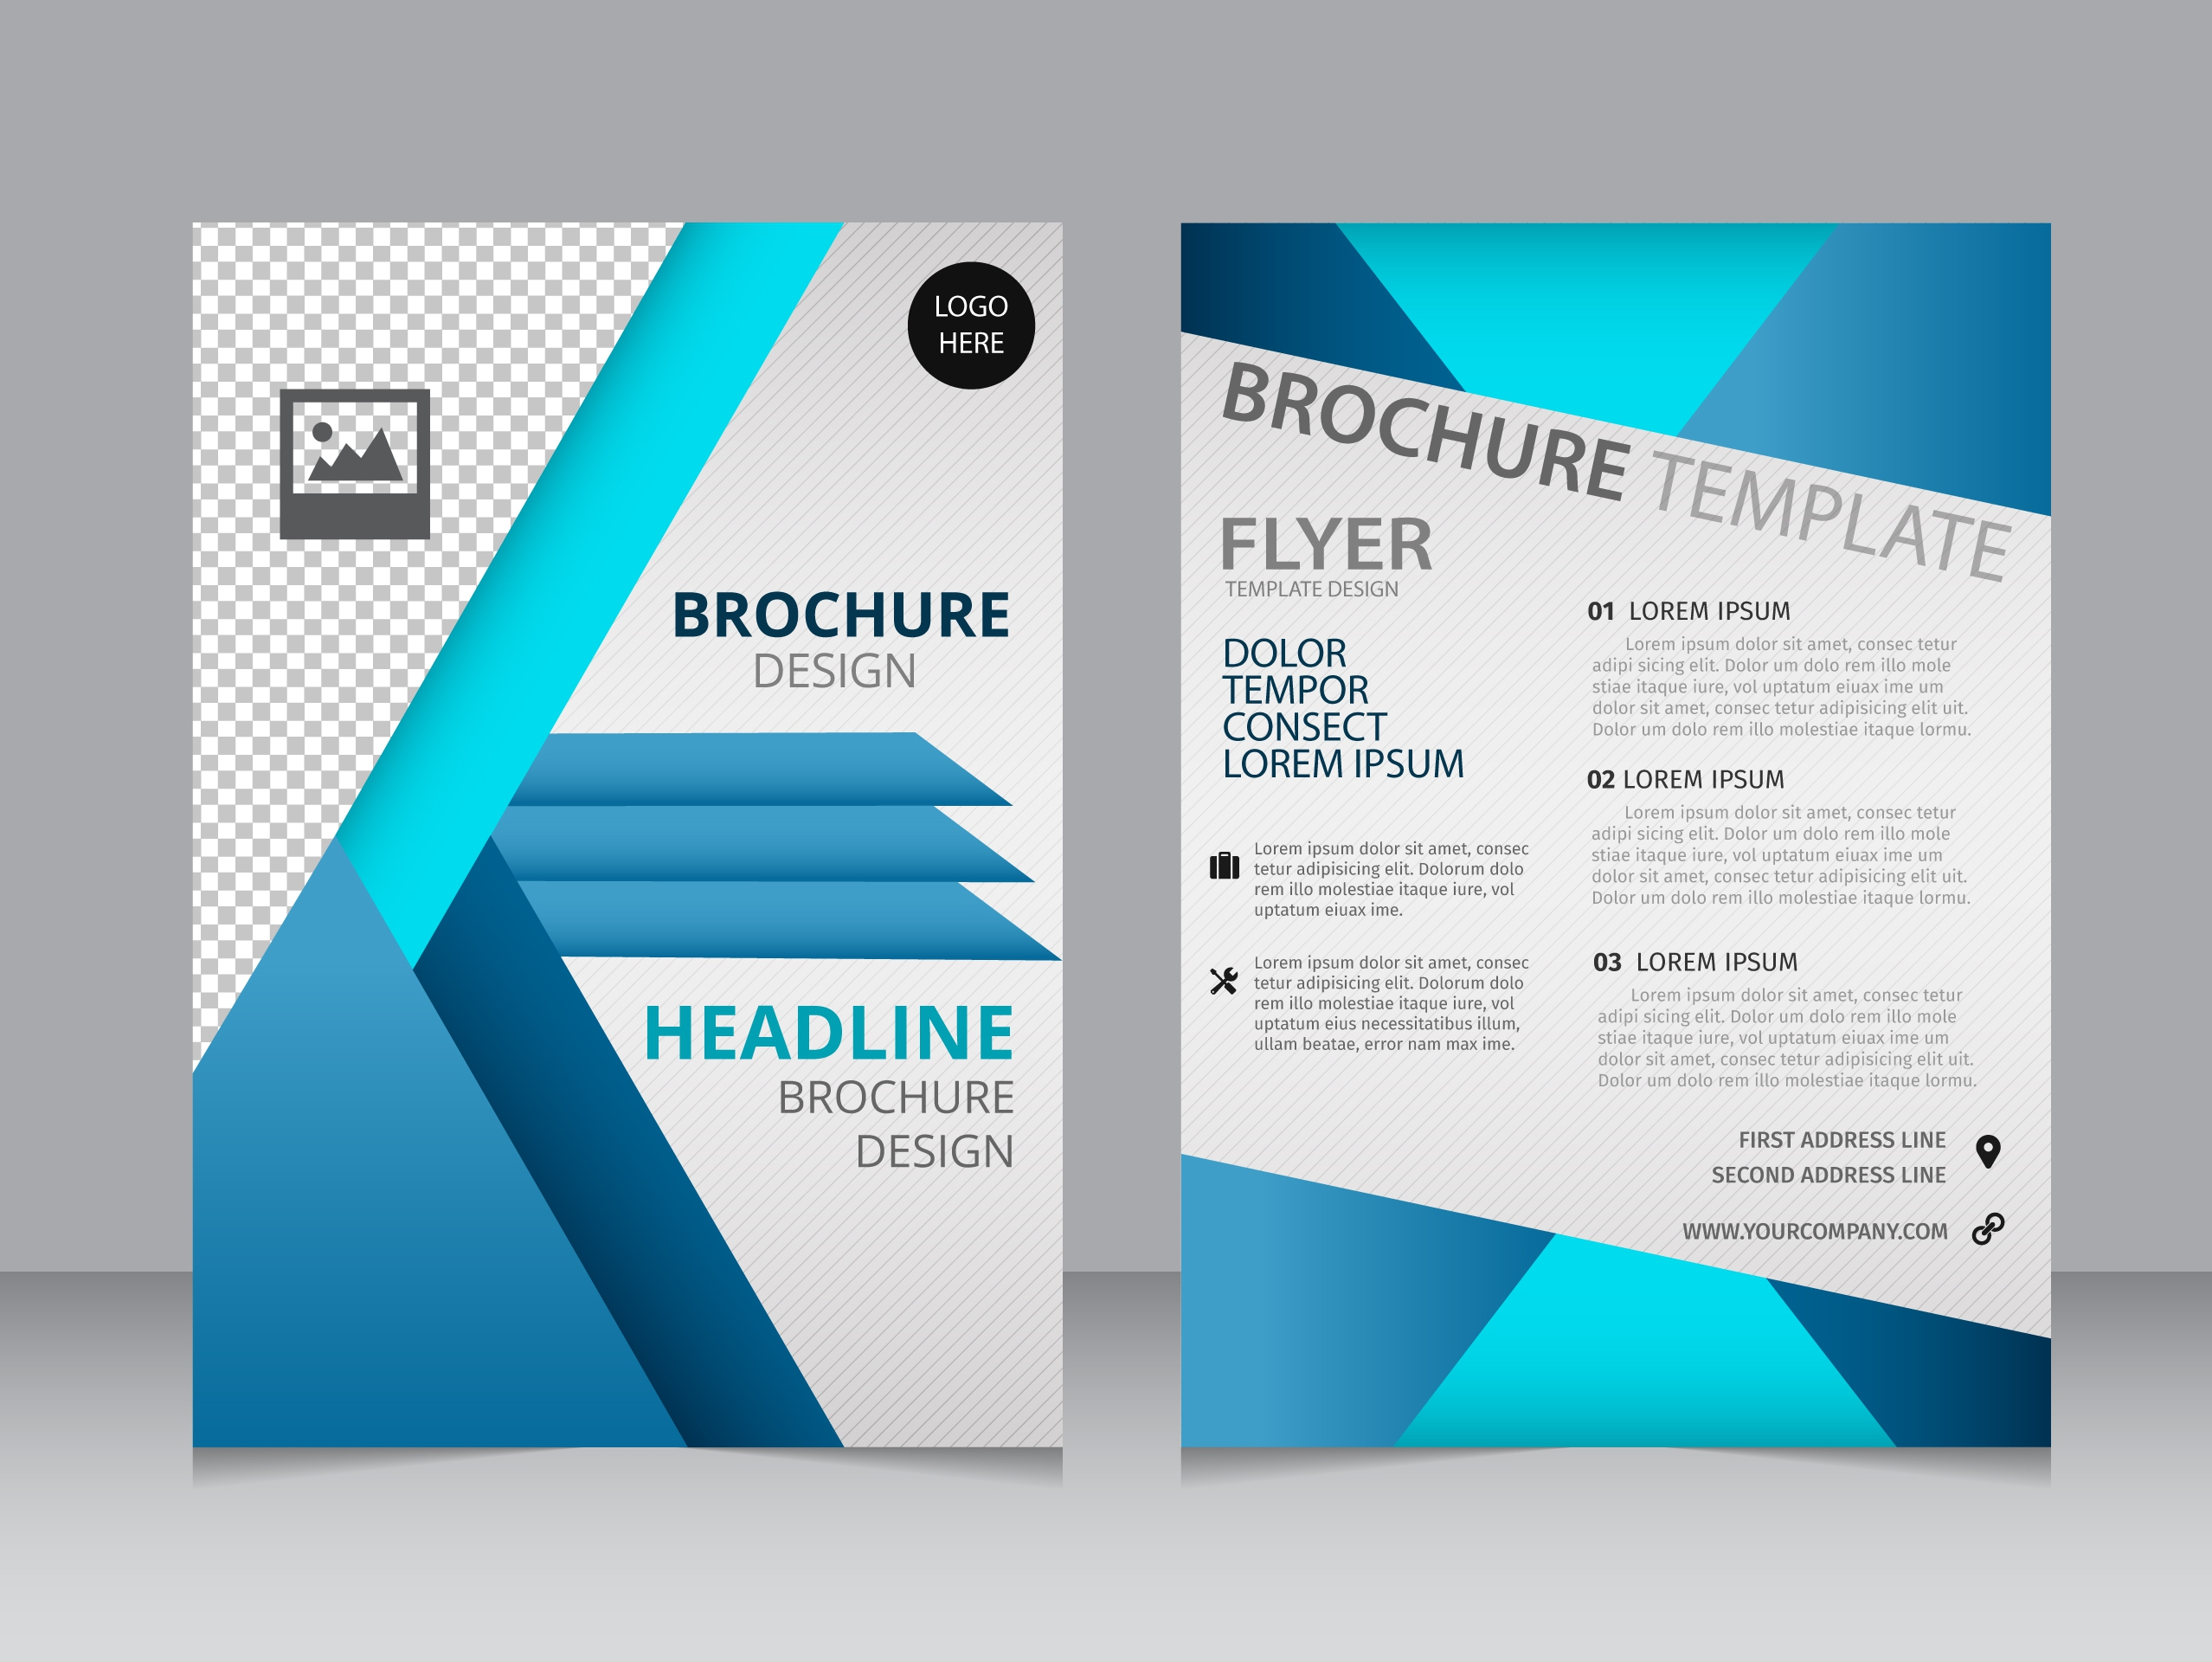 design brochure templates free - 11 free sample travel brochure templates printable samples